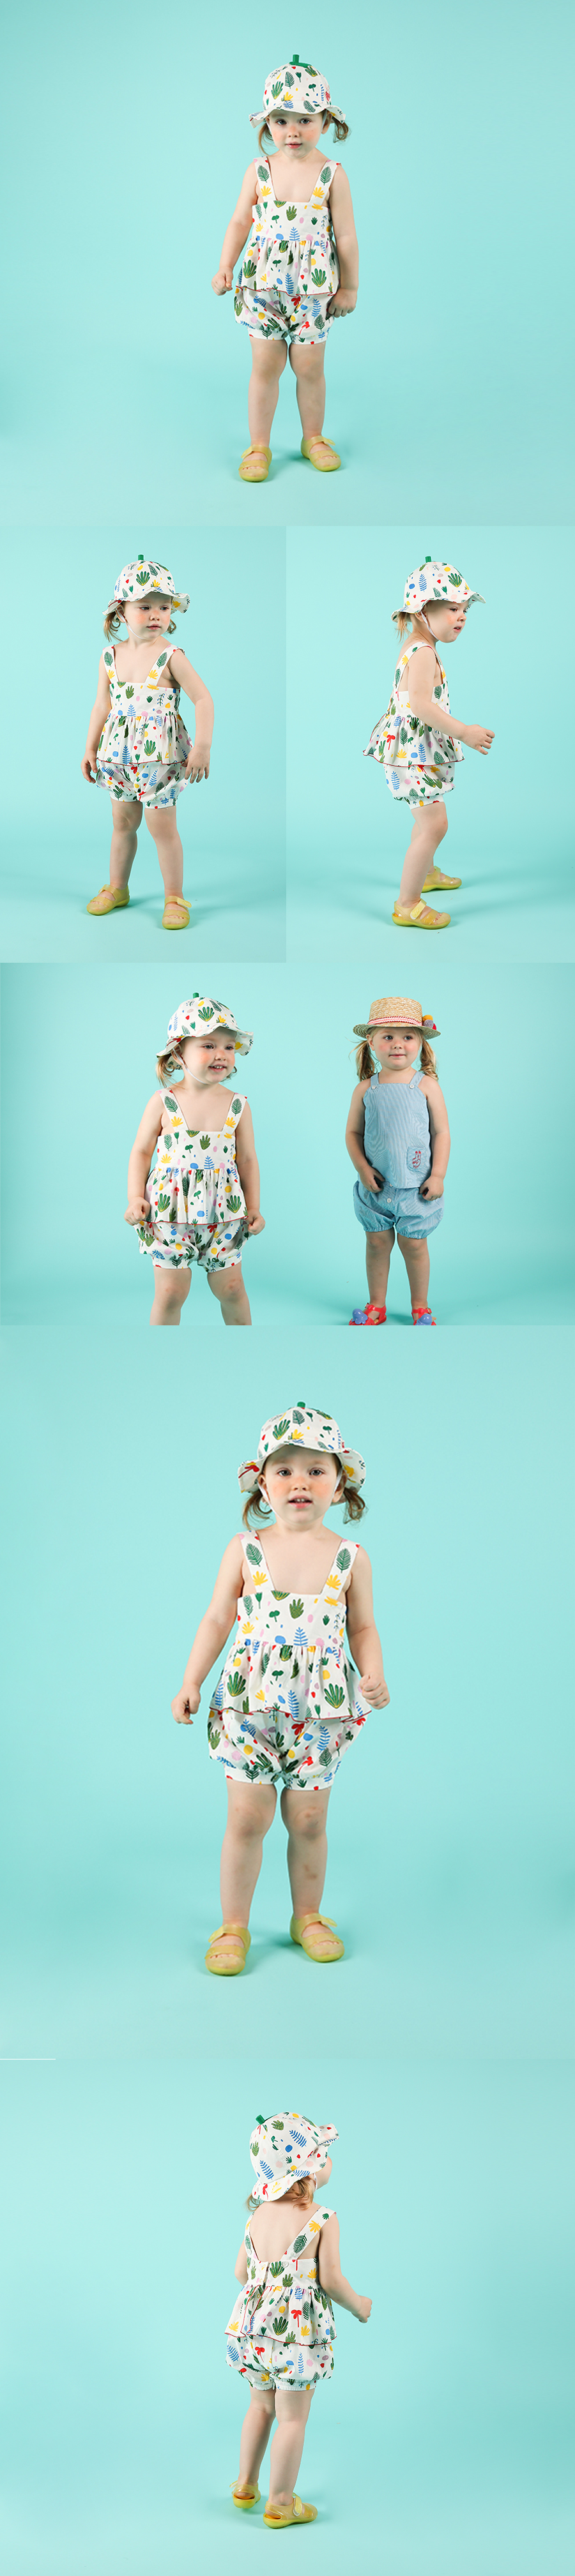 Multi tropical baby girl suit 상세 이미지